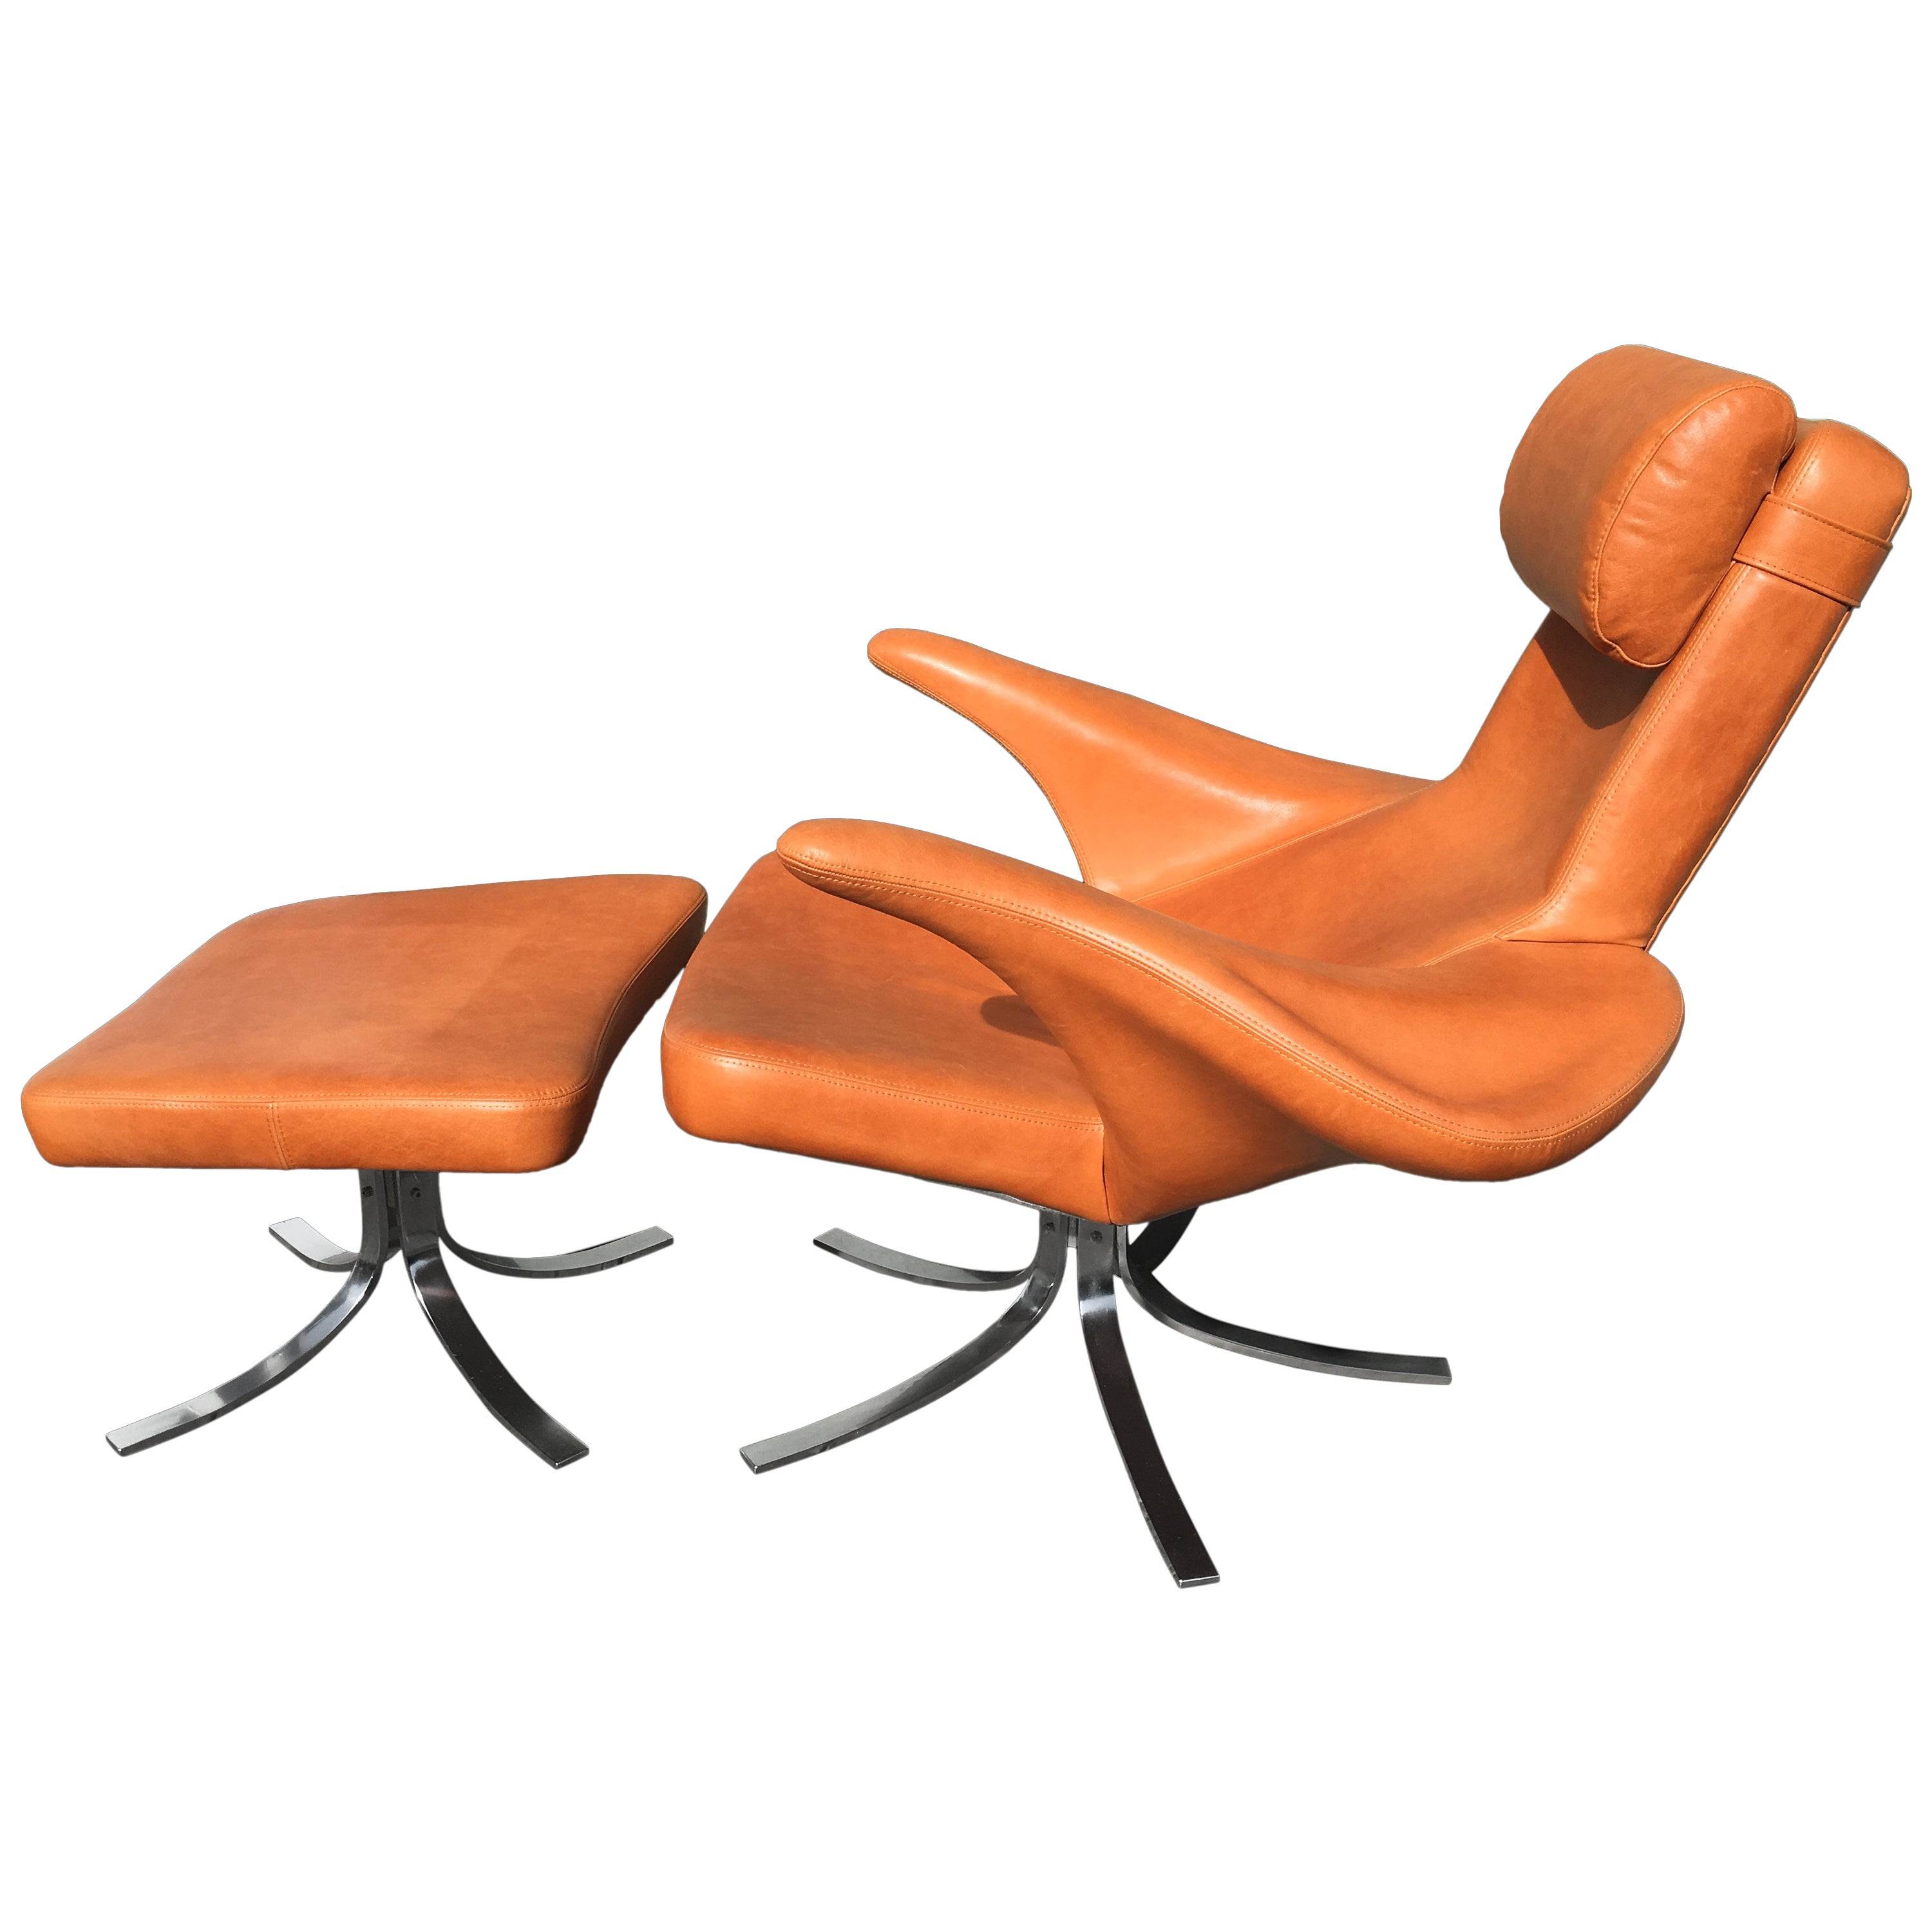 Astounding Cognac Leather Seagull Chair And Ottoman By Gosta Berg And Stenerik Eriksson Gmtry Best Dining Table And Chair Ideas Images Gmtryco